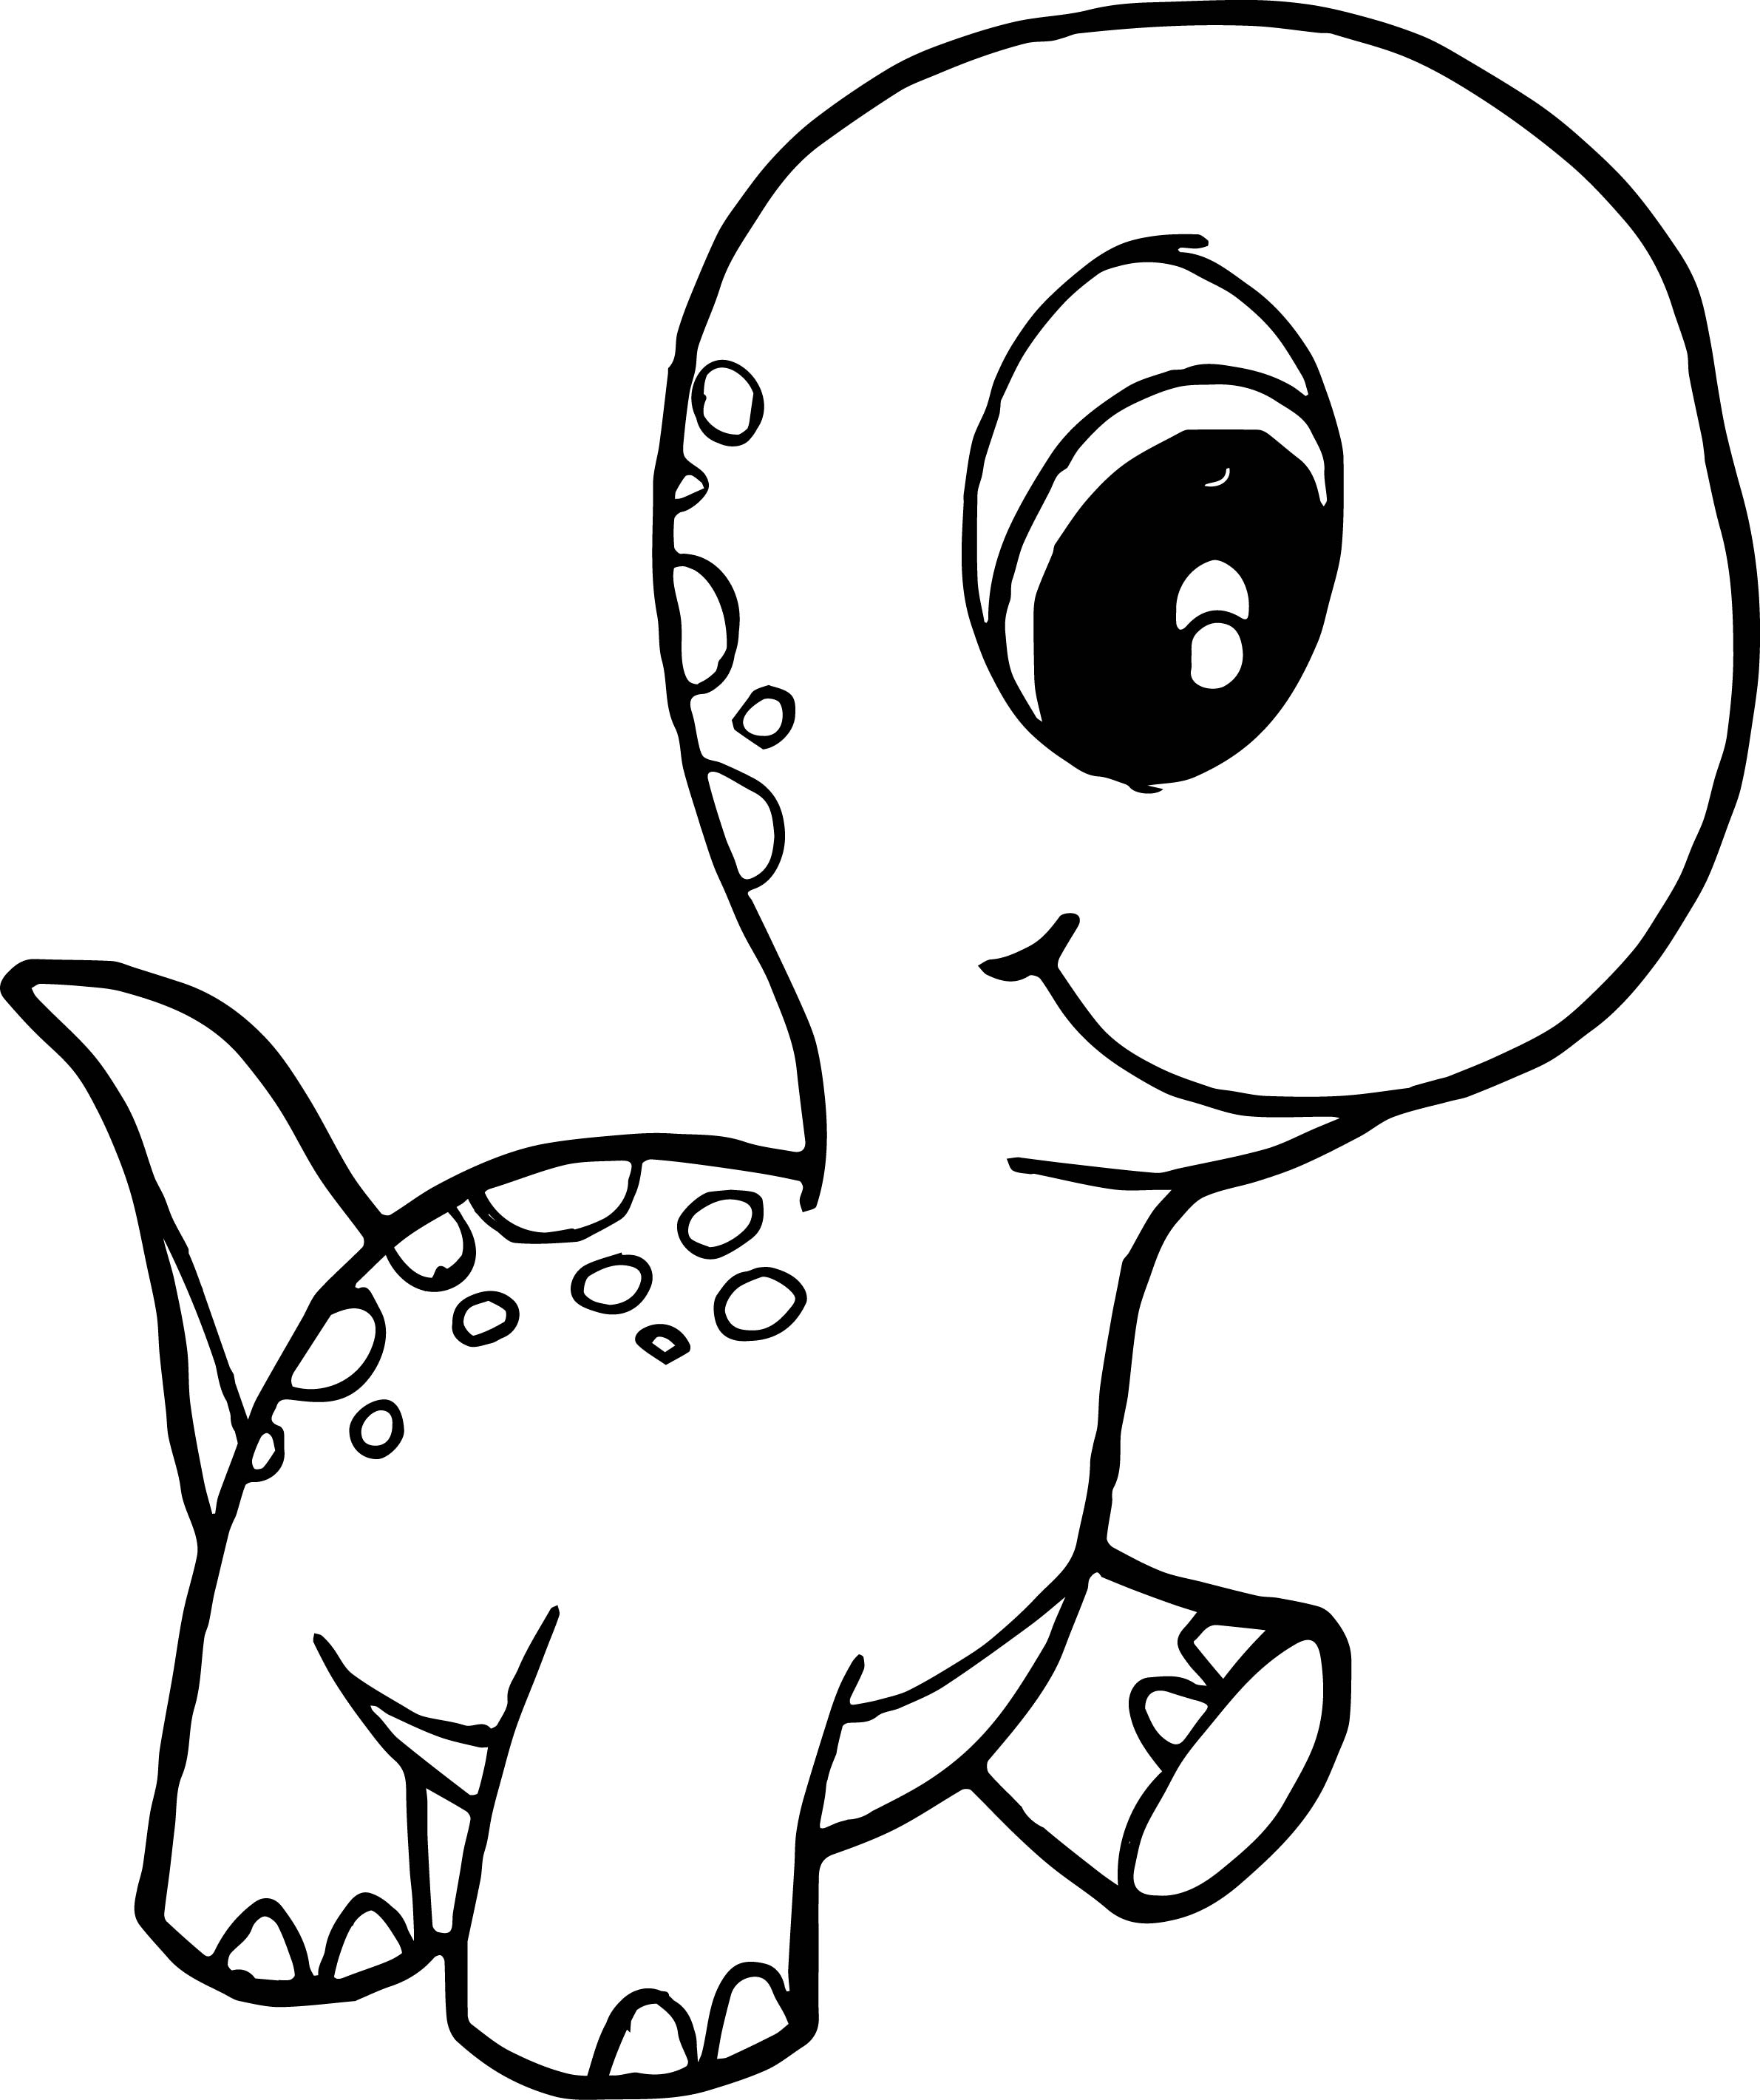 cute baby dinosaur coloring pages baby dino coloring page pages baby cute coloring dinosaur